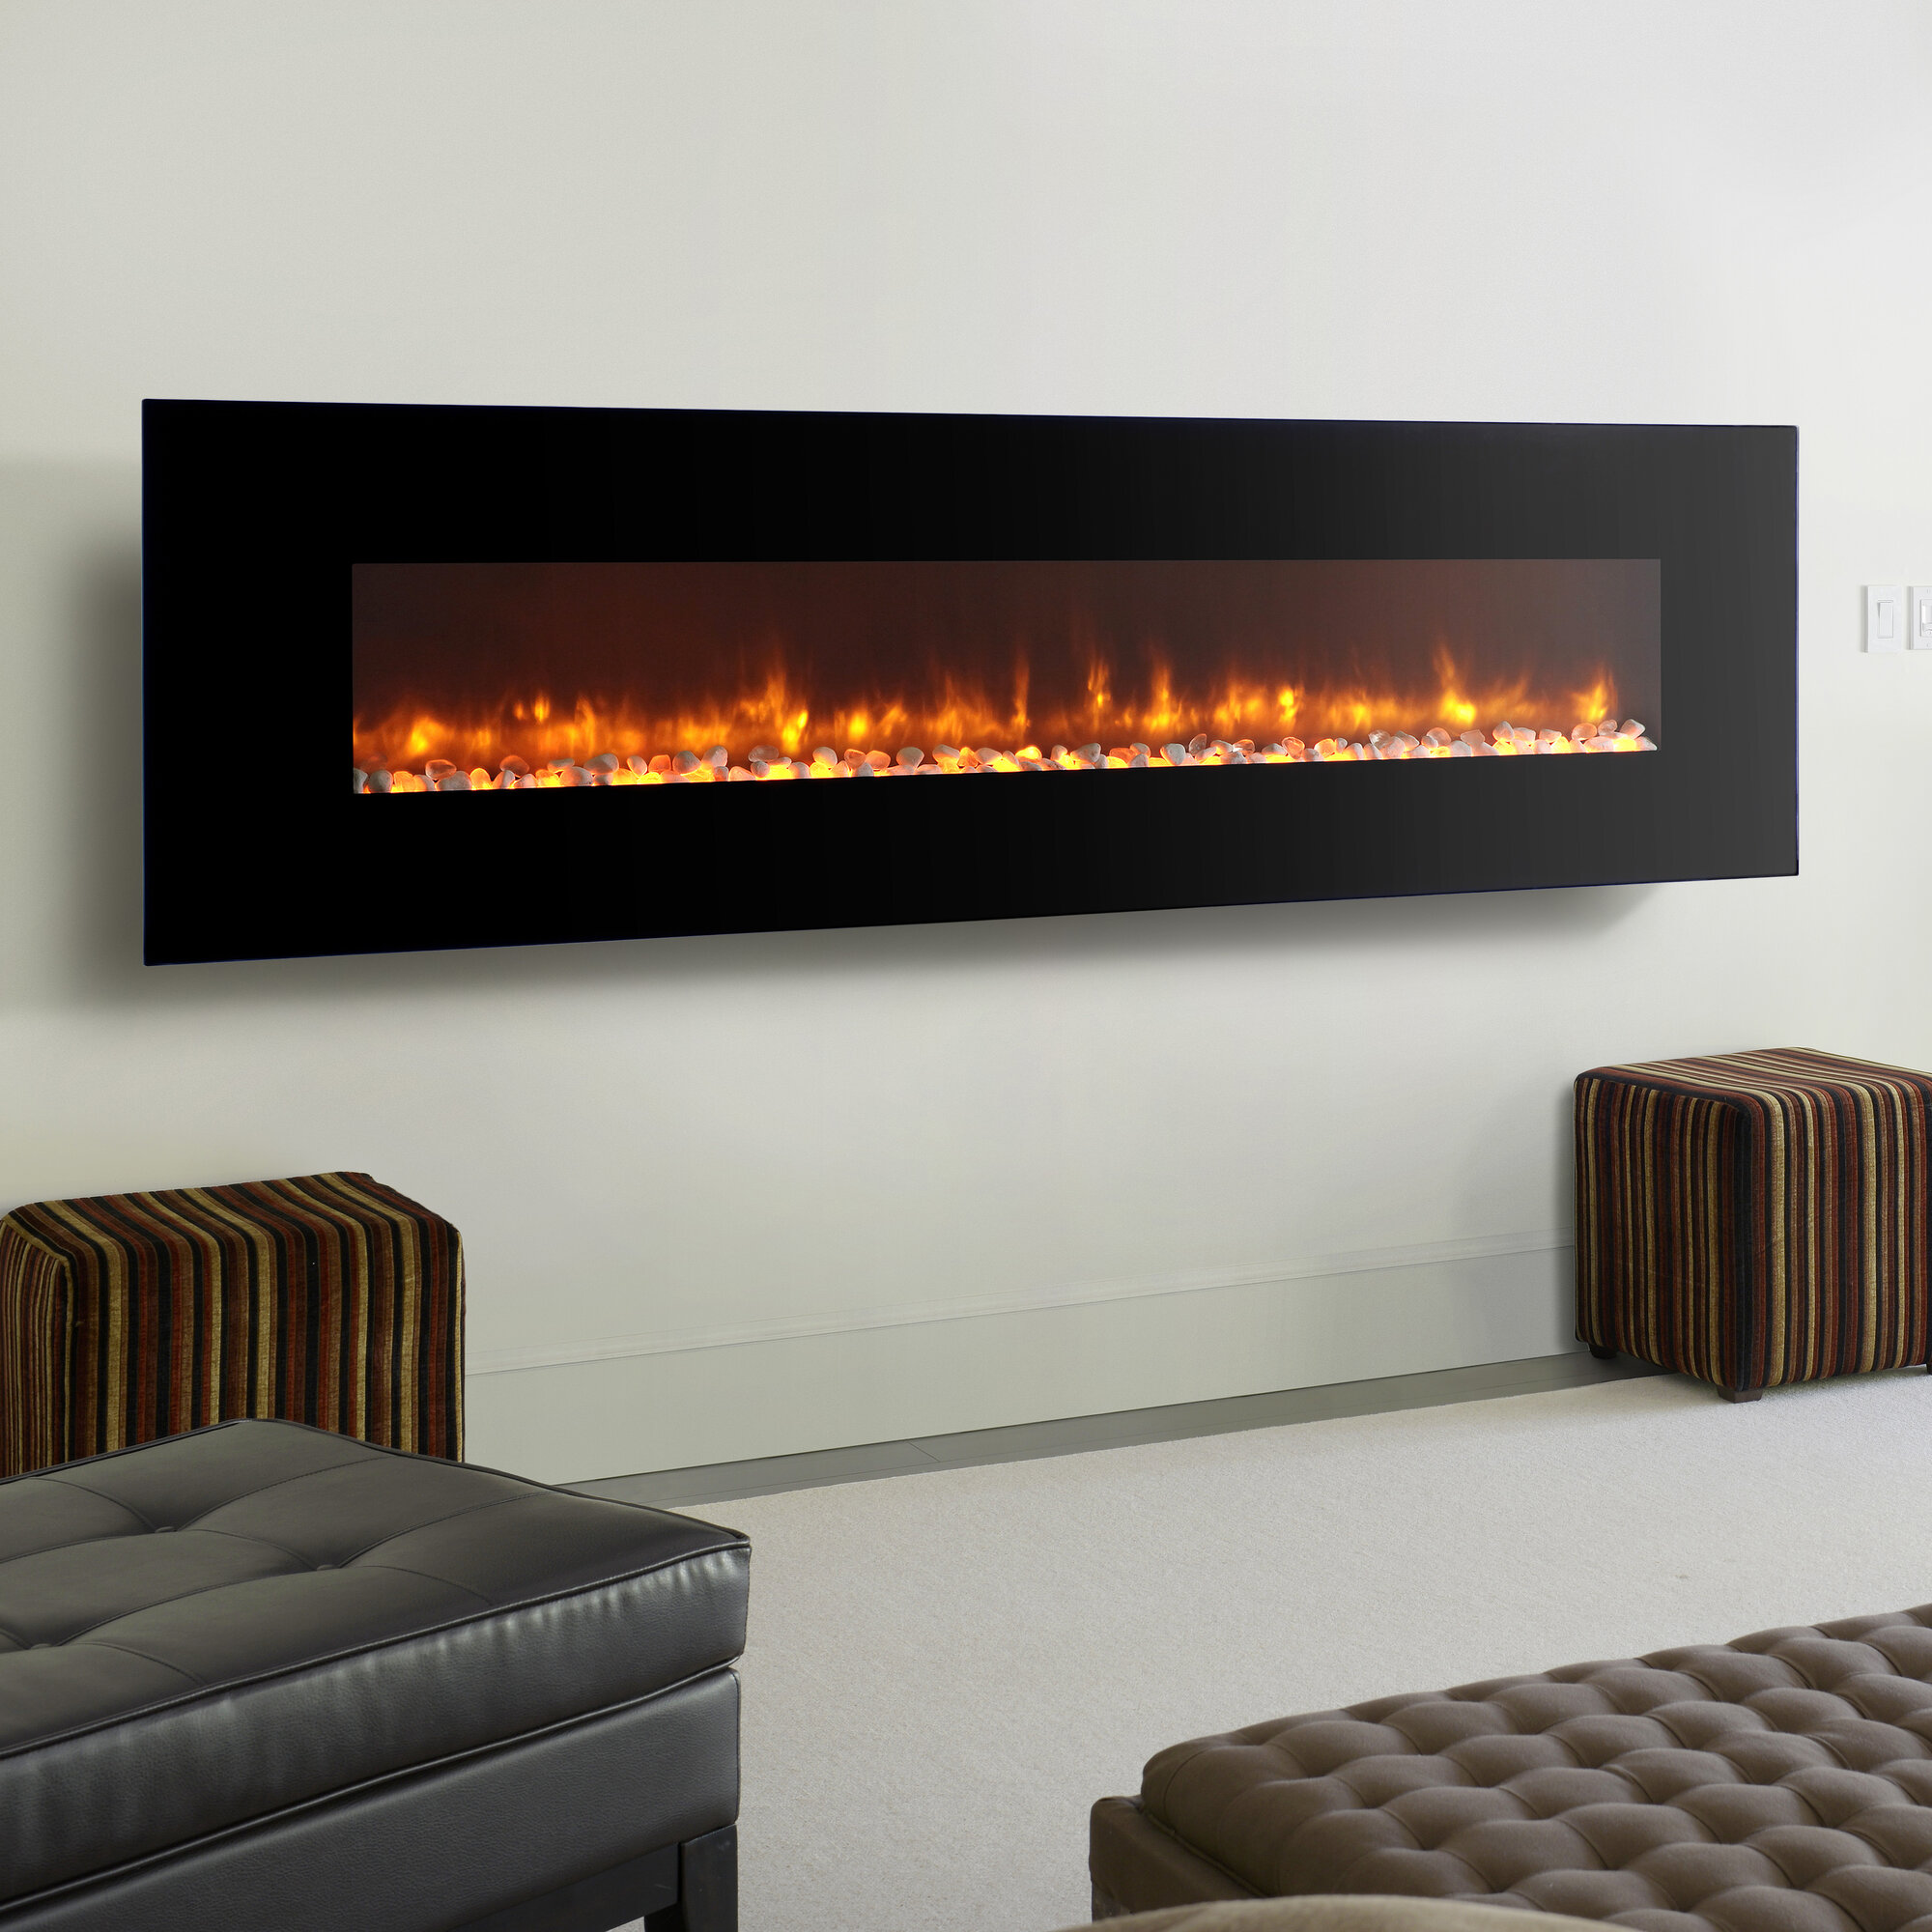 dynasty fireplaces led wall mount electric fireplace ebay. Black Bedroom Furniture Sets. Home Design Ideas